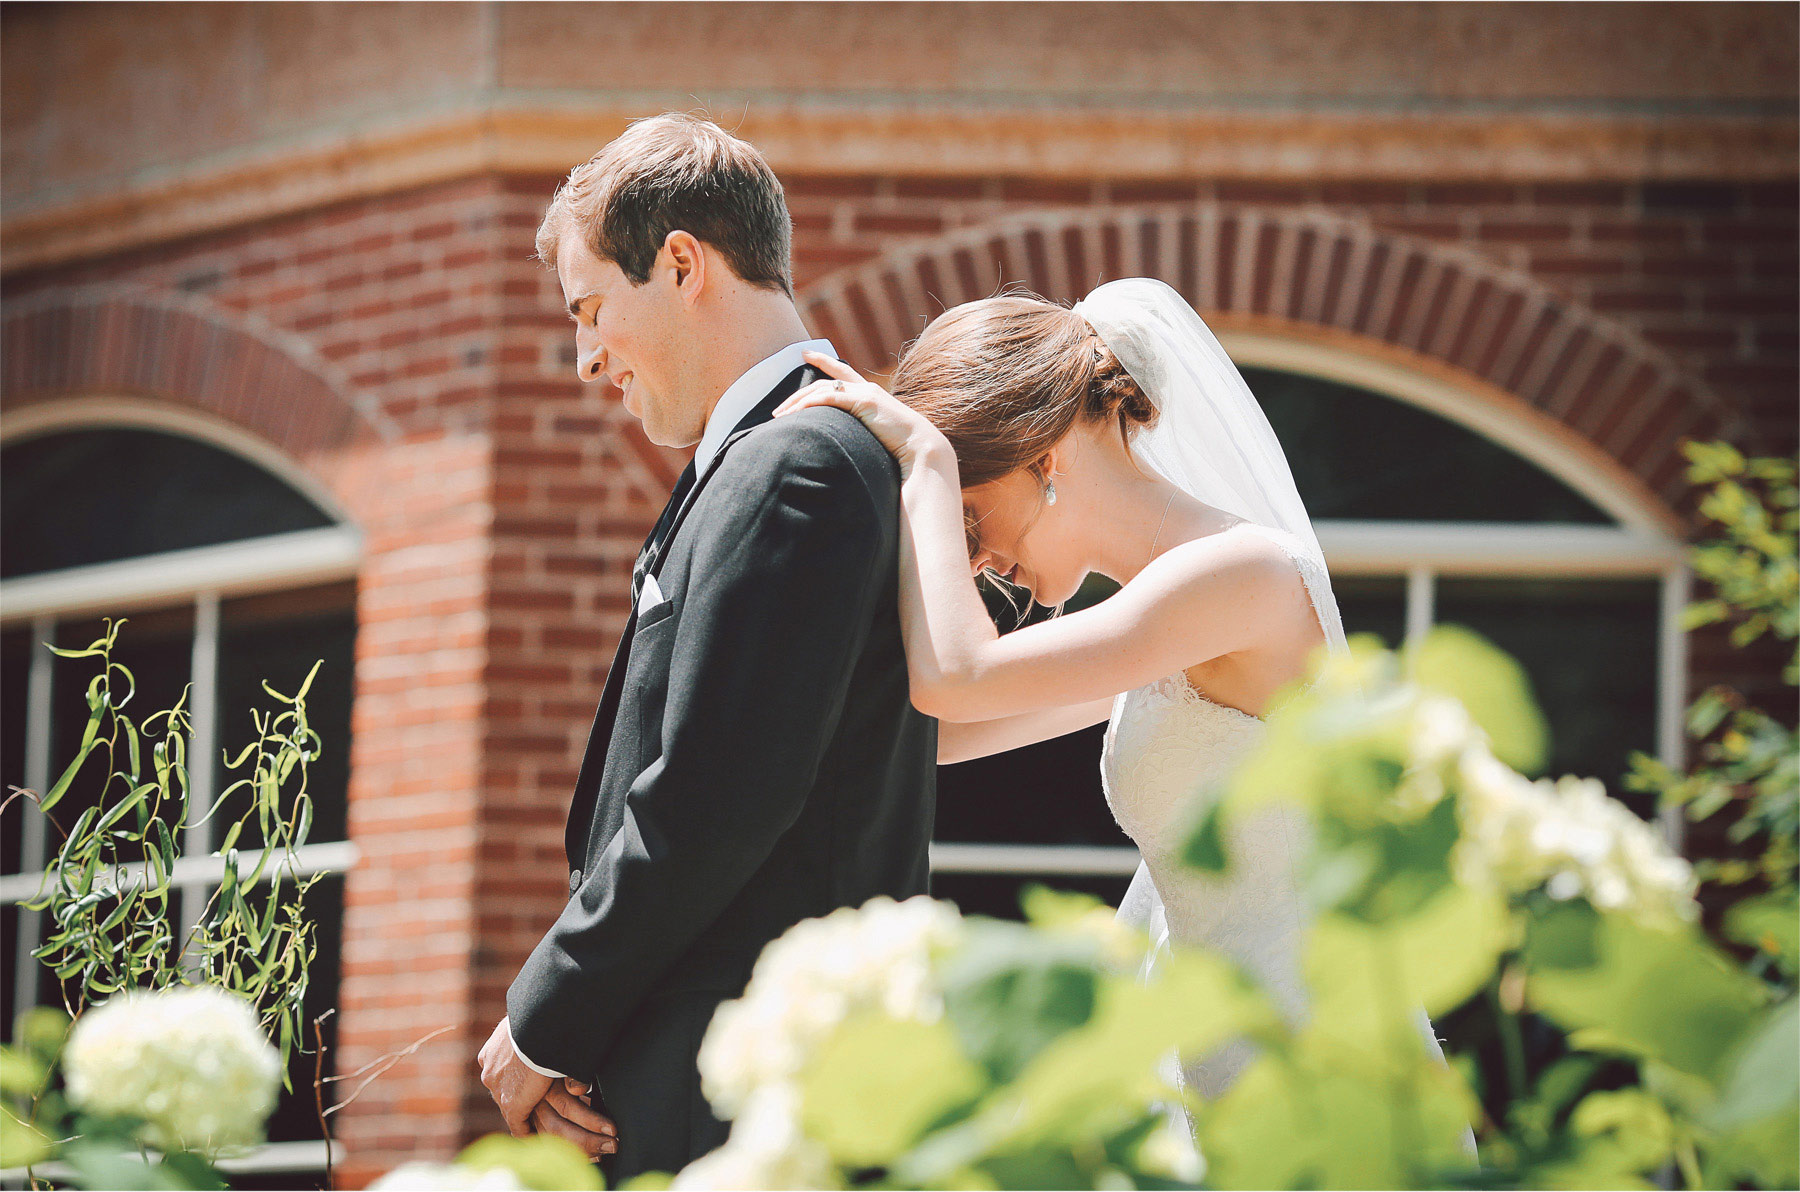 04-Edina-Minnesota-Wedding-Photographer-by-Andrew-Vick-Photography-Summer-Our-Lady-of-Grace-Catholic-Parish-Church-Bride-Groom-First-Look-Meeting-Embrace-Vintage-Betsy-and-Jon.jpg